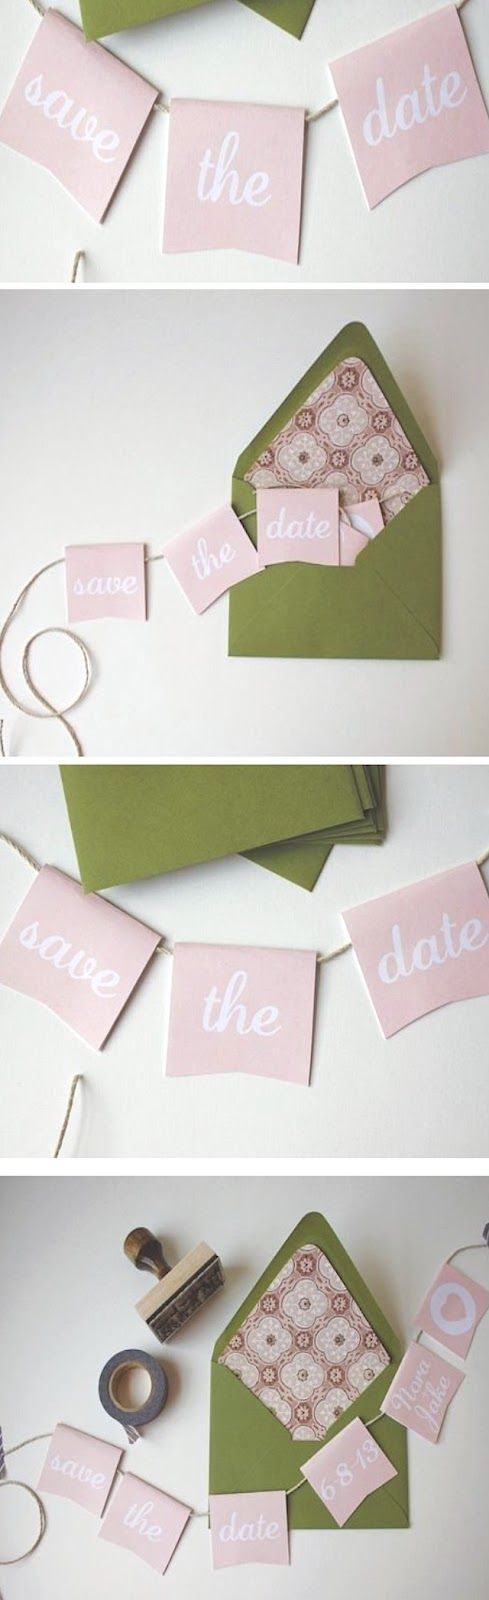 DIY WEDDING : Mini Bunting Save the Dates ~ Weddings at artīt(us)